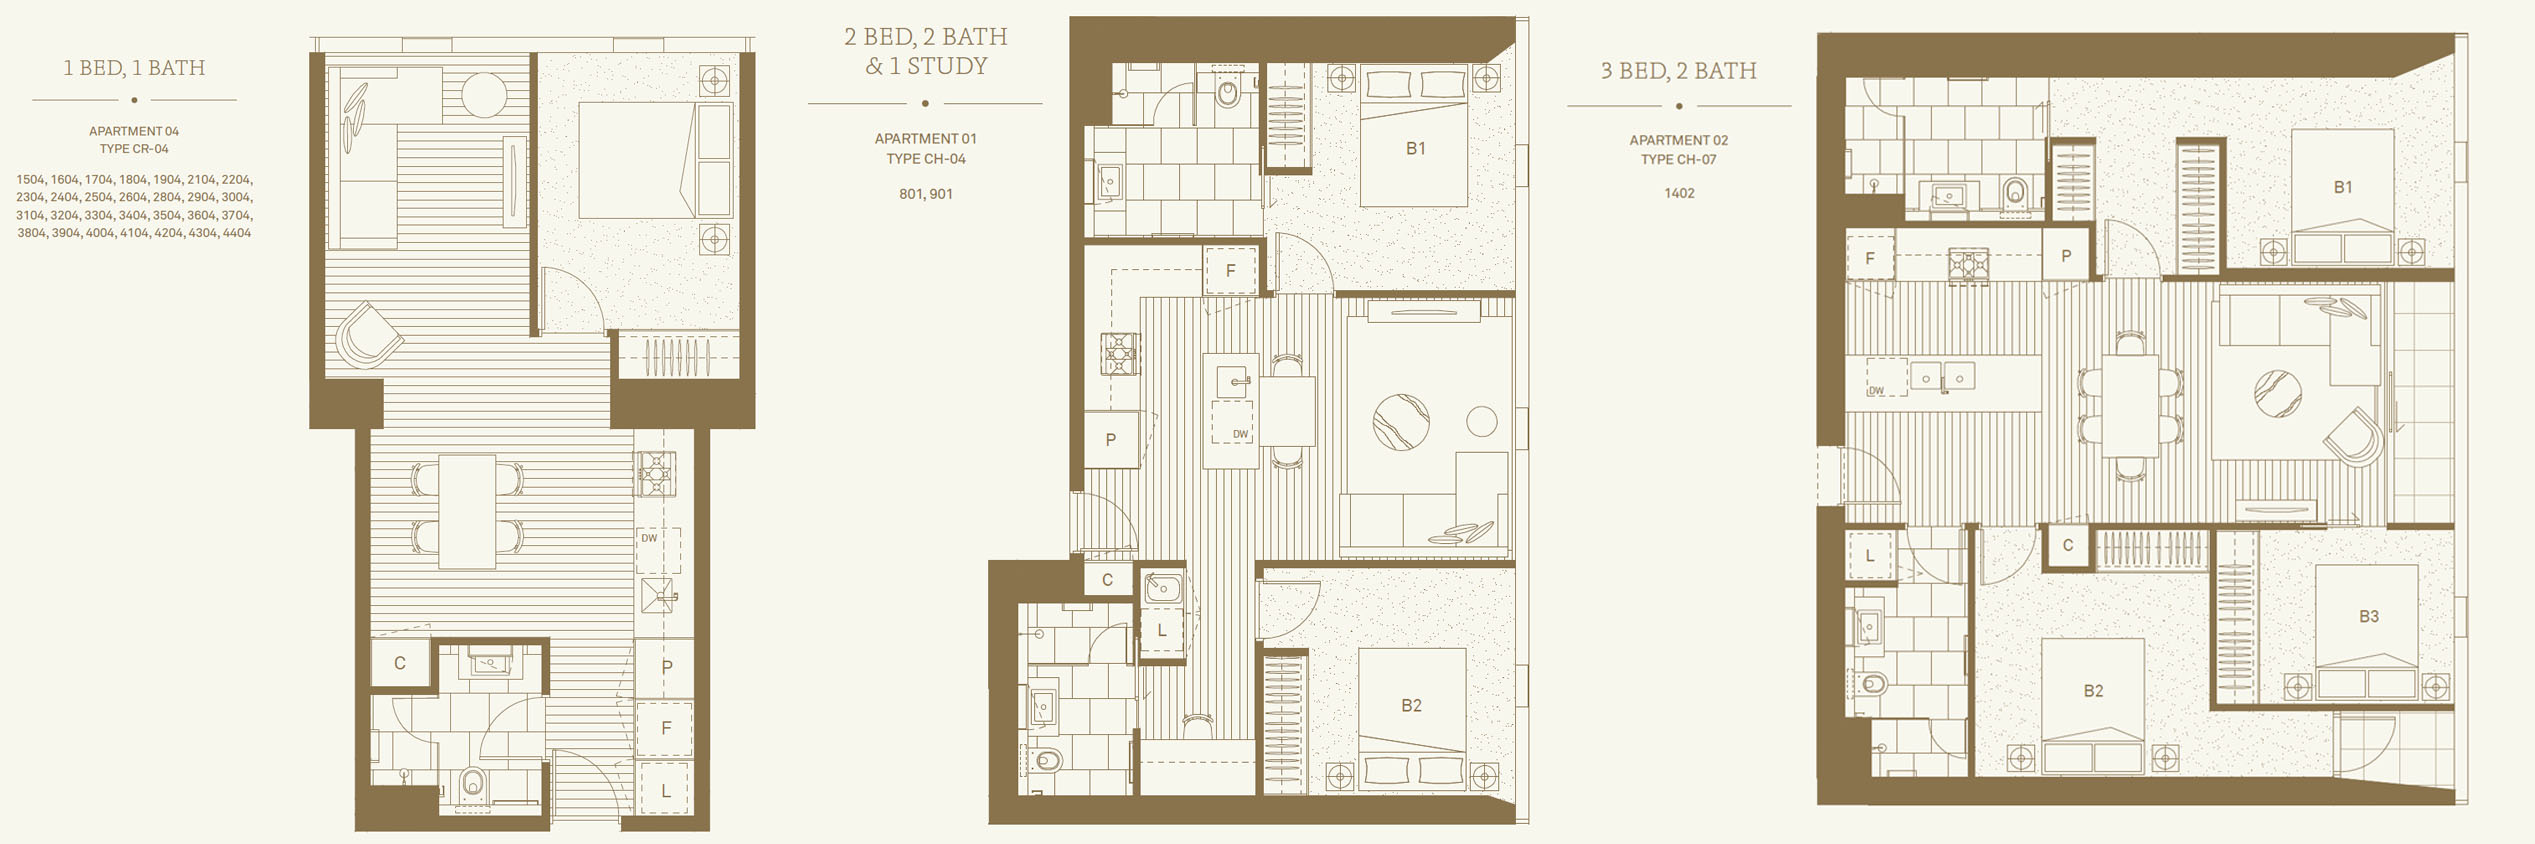 Collins house melbourne australia the best value new for Apartment floor plans melbourne